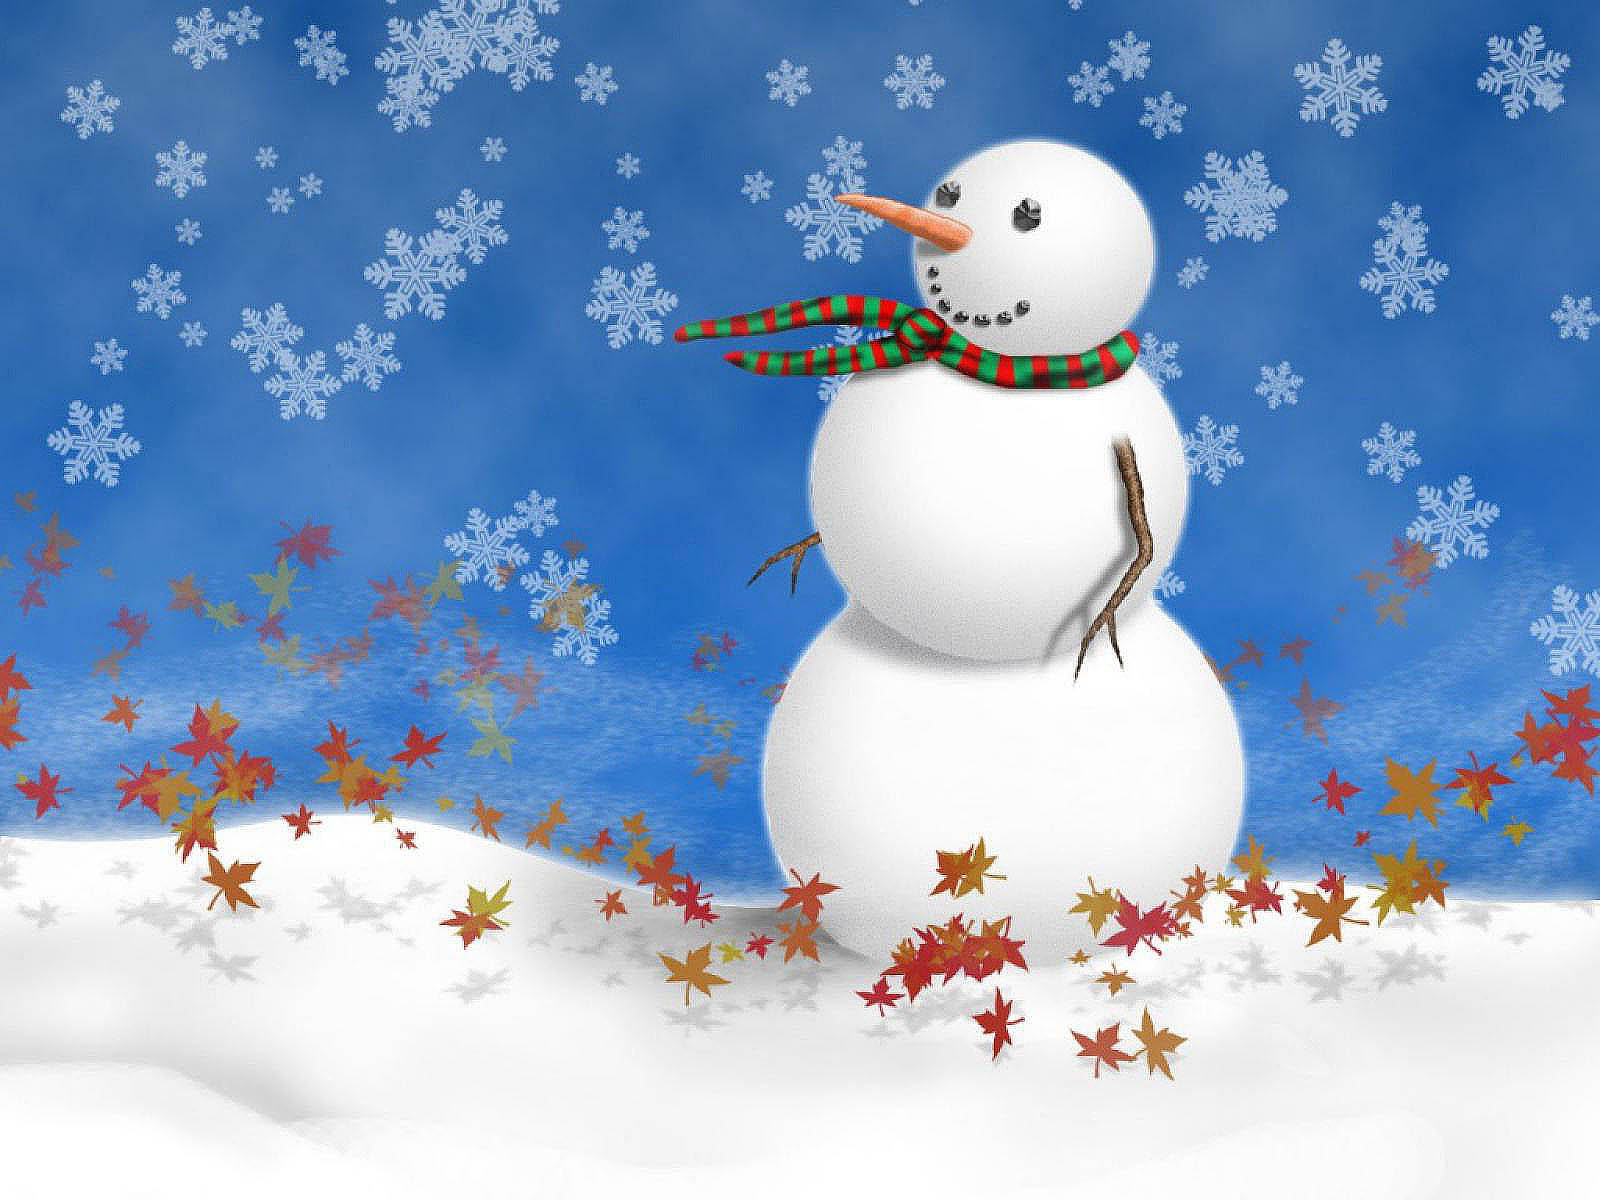 winter snowman wallpaper 2015   Grasscloth Wallpaper 1600x1200